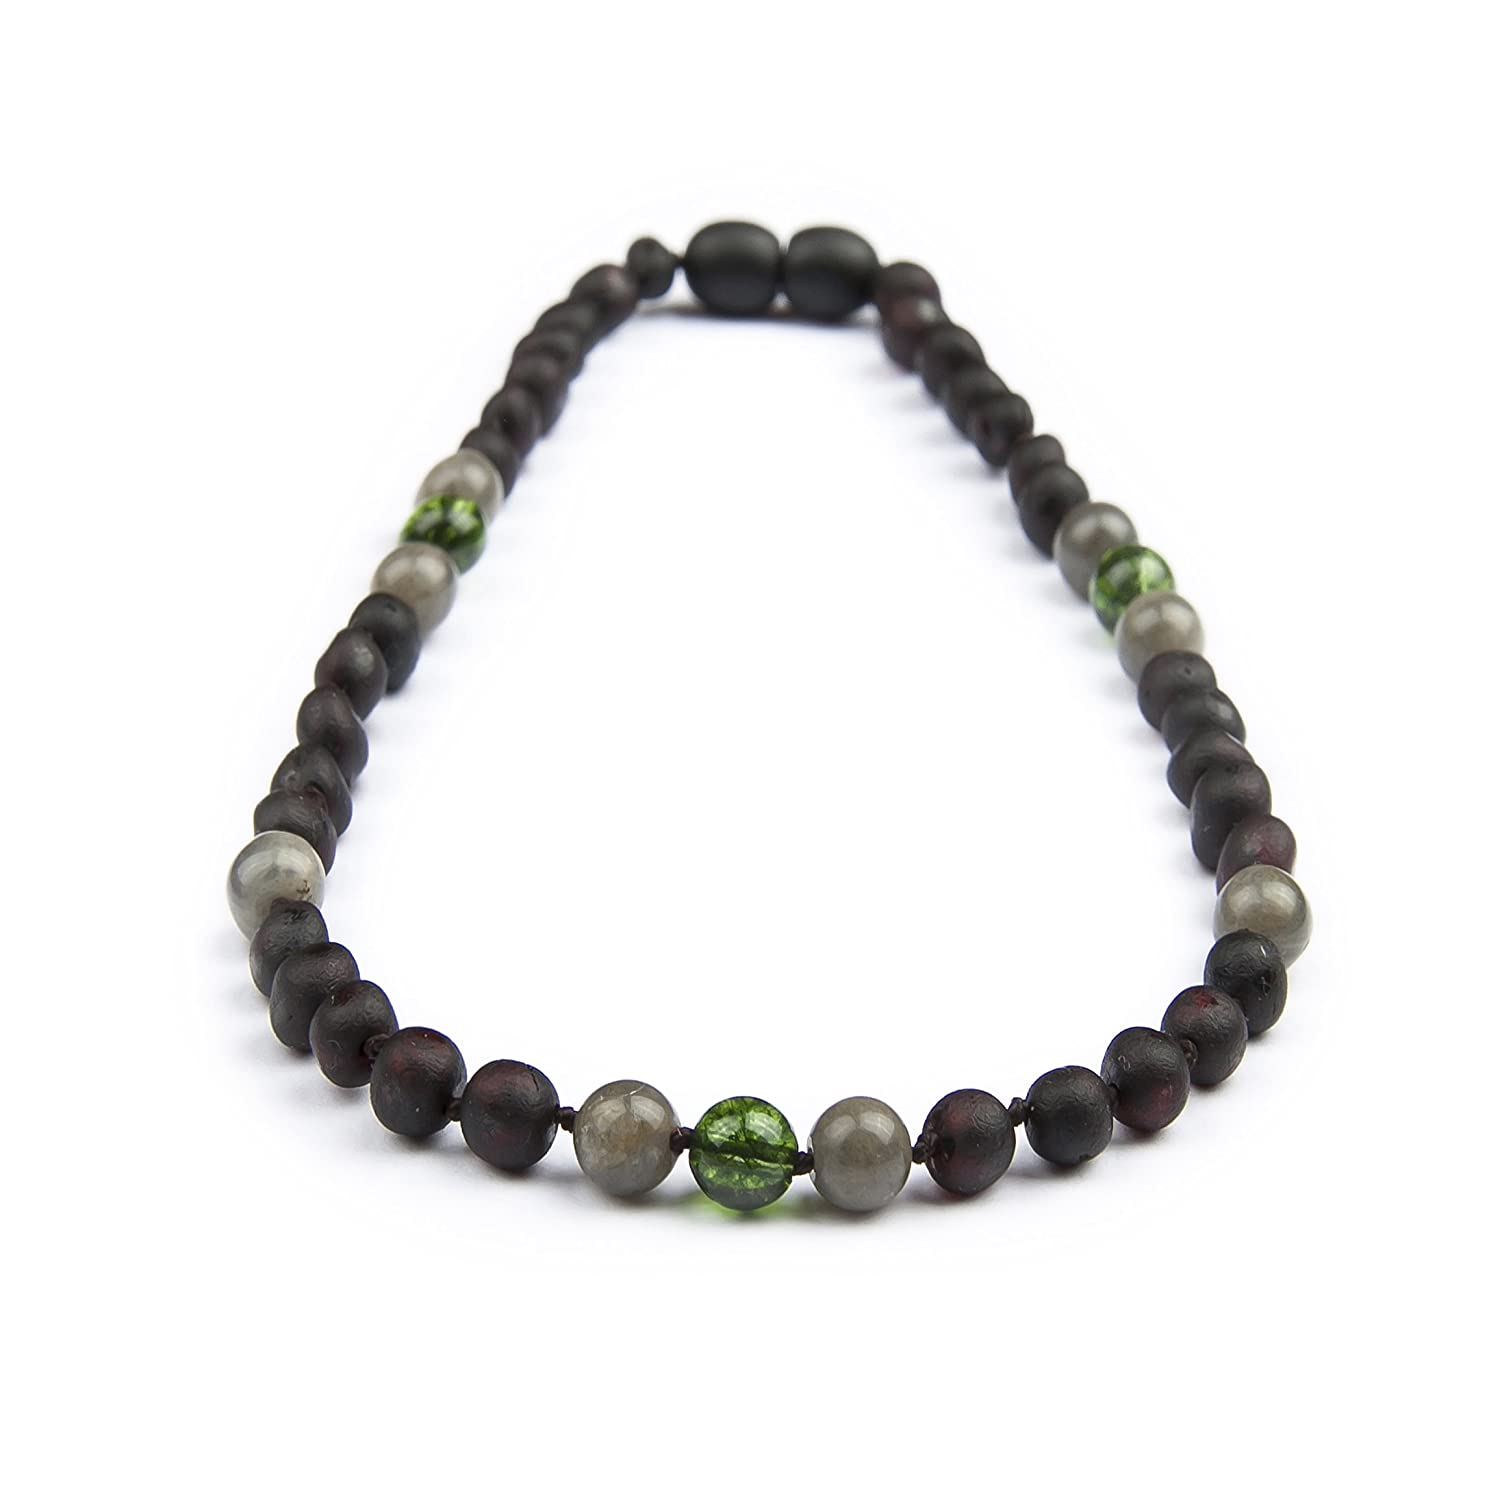 The Art of Cure Original Baltic Amber Necklace- Polished Handmade 12-12.5 Inches size for boy or girl Triple black /& Yellow